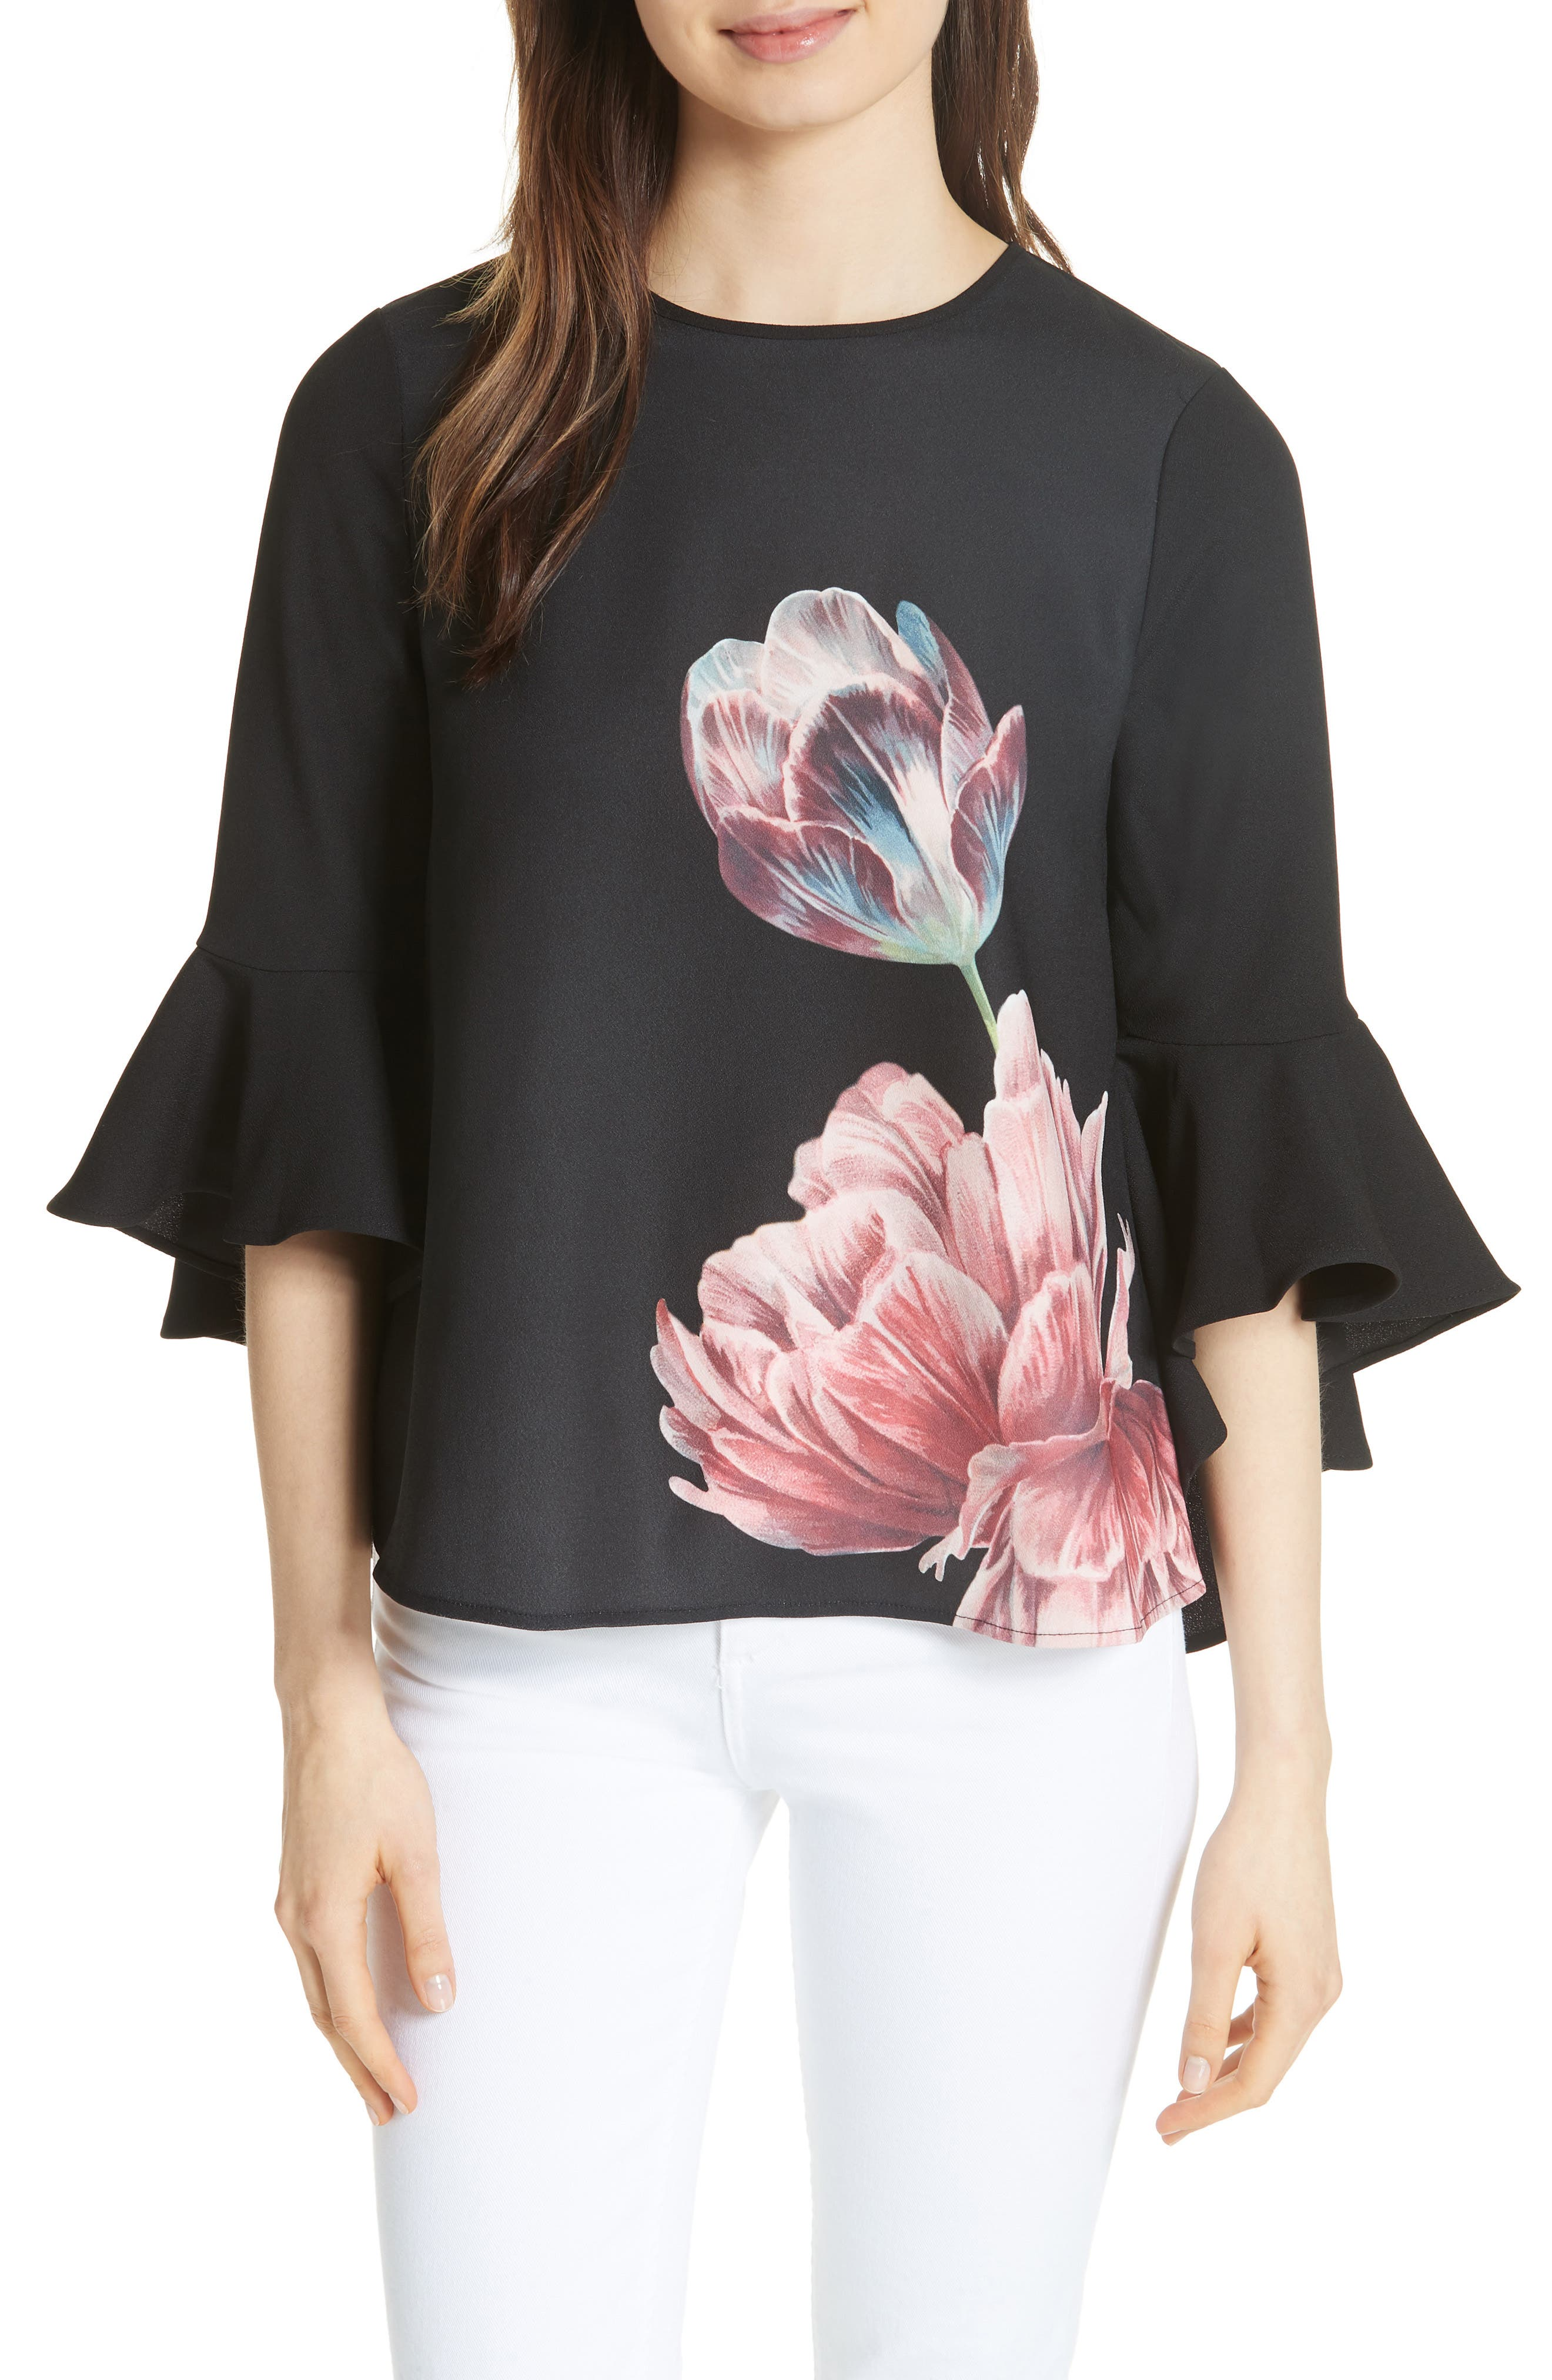 TED BAKER LONDON Suuzan Tranquility Waterfall Top, Main, color, 001